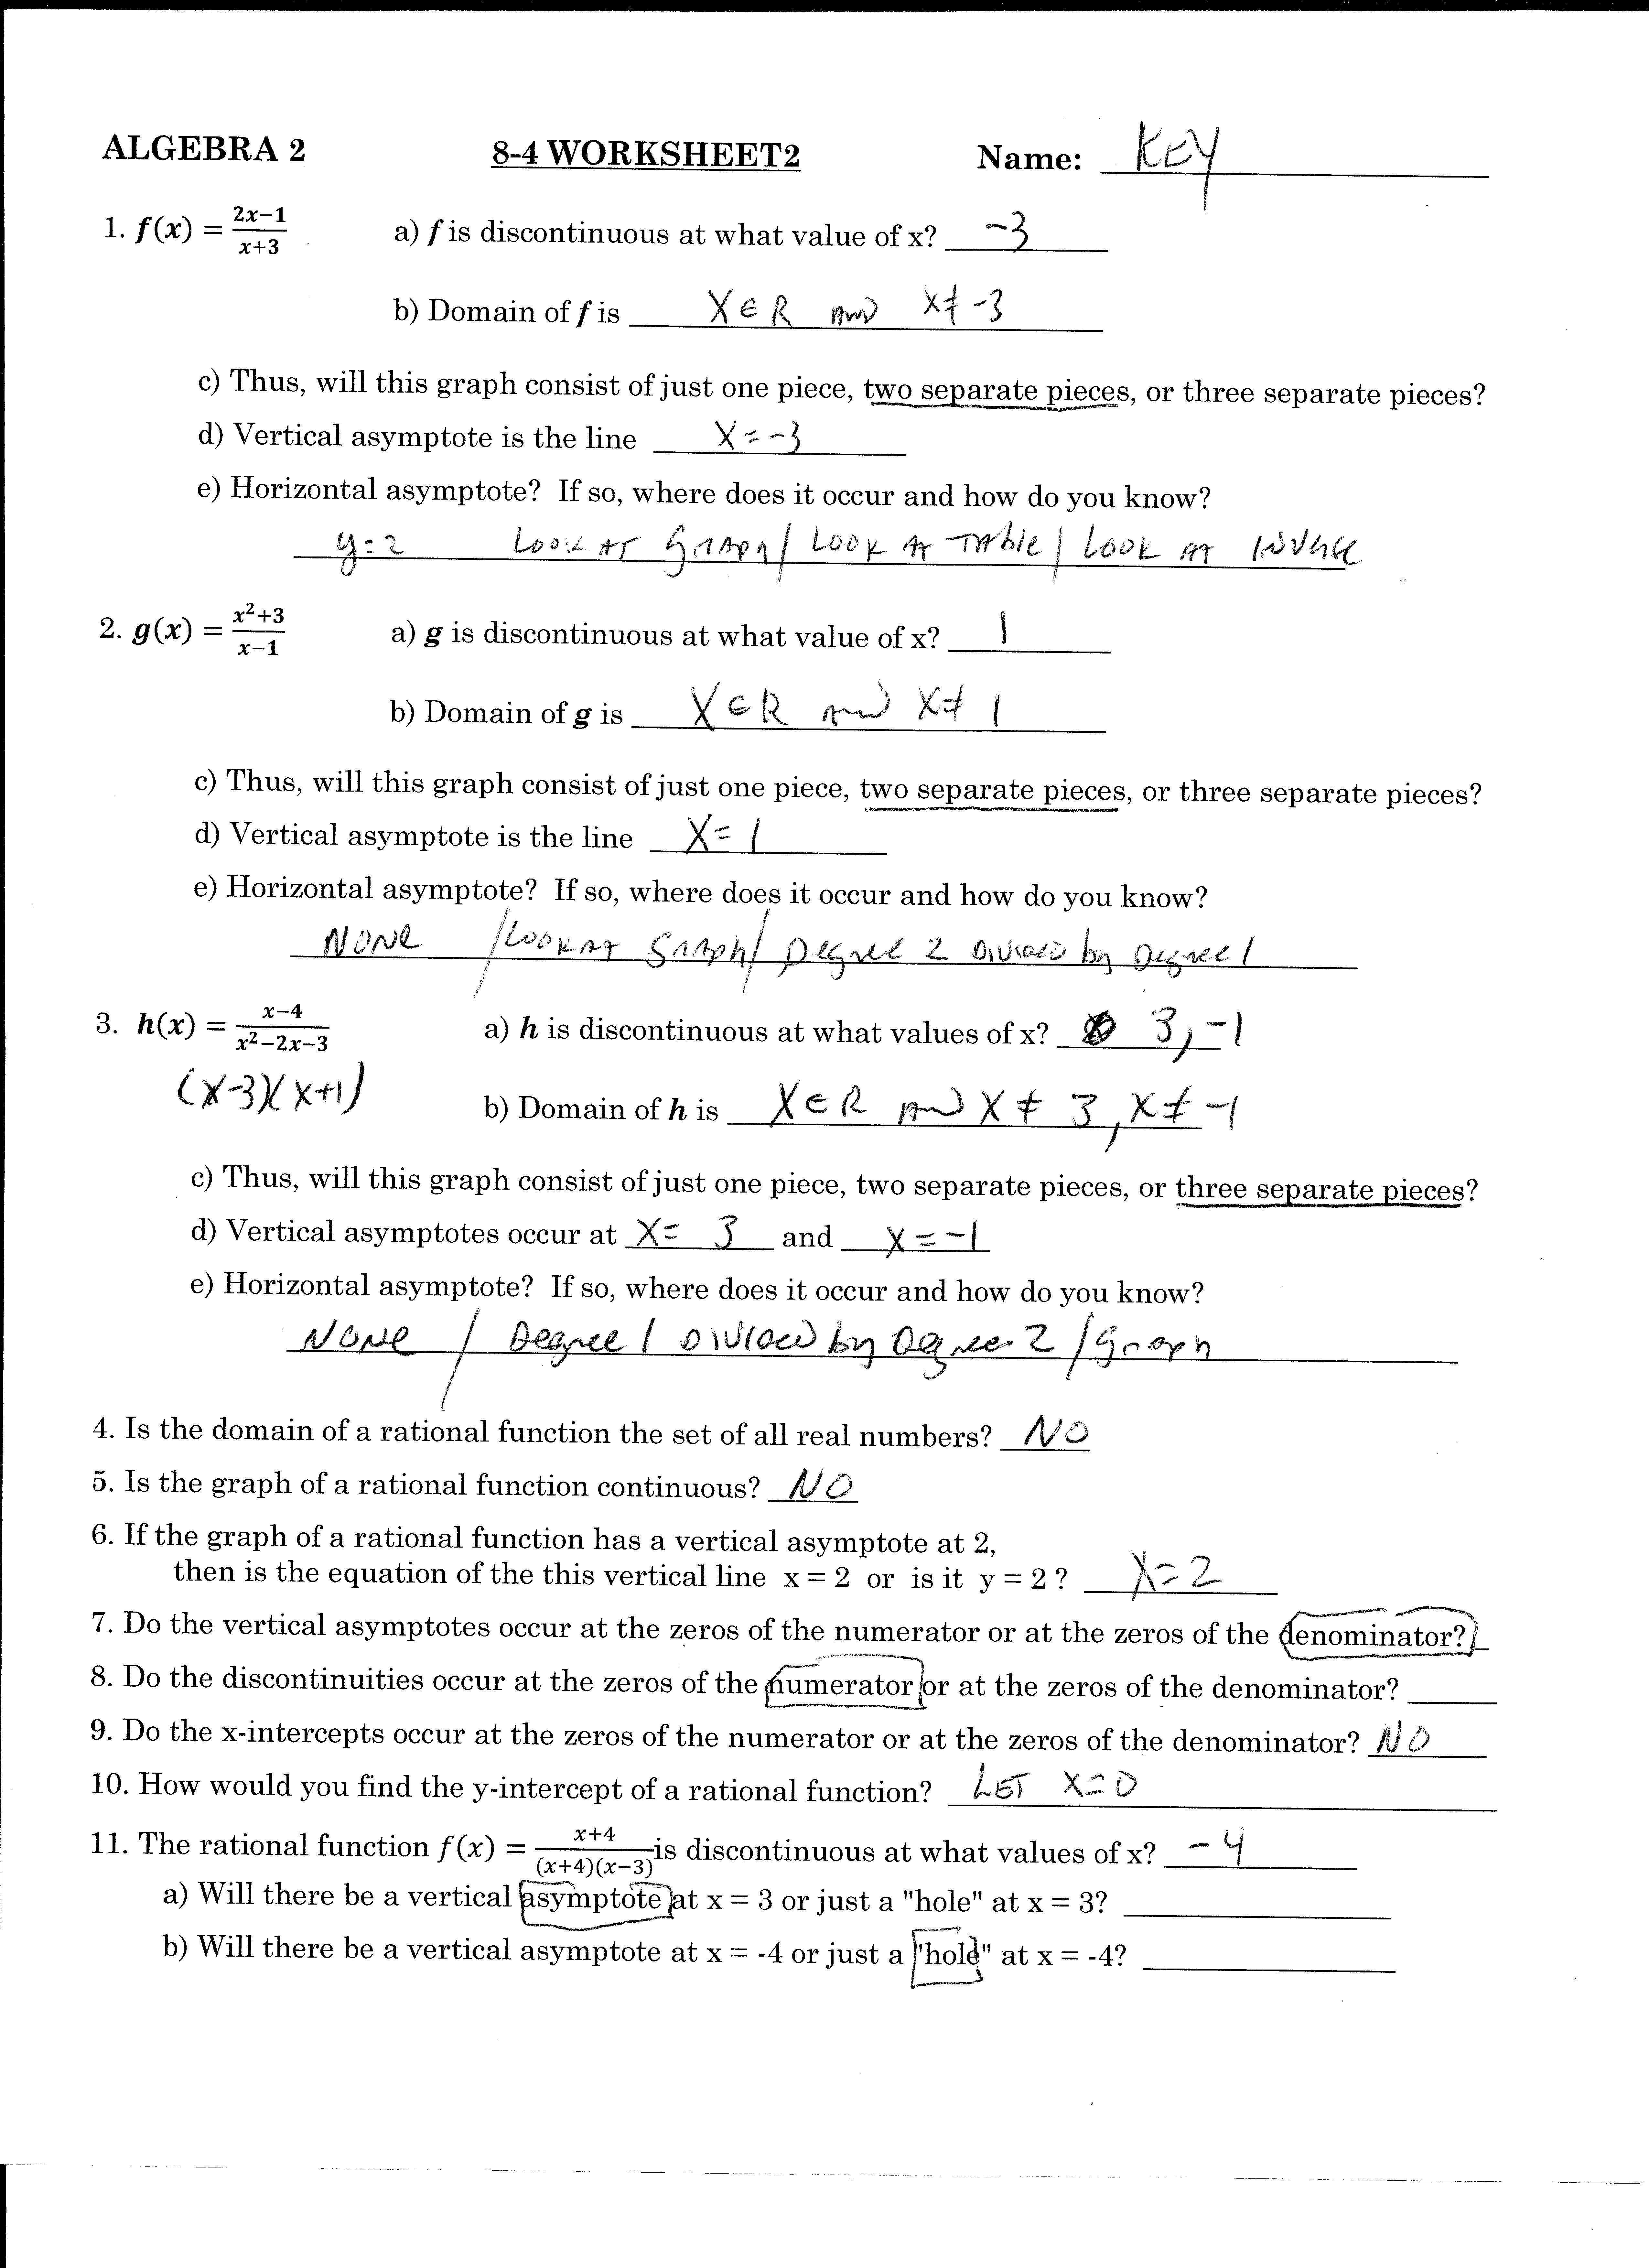 Solving Linear Equations Worksheet 1 Sections 3 4 Answers